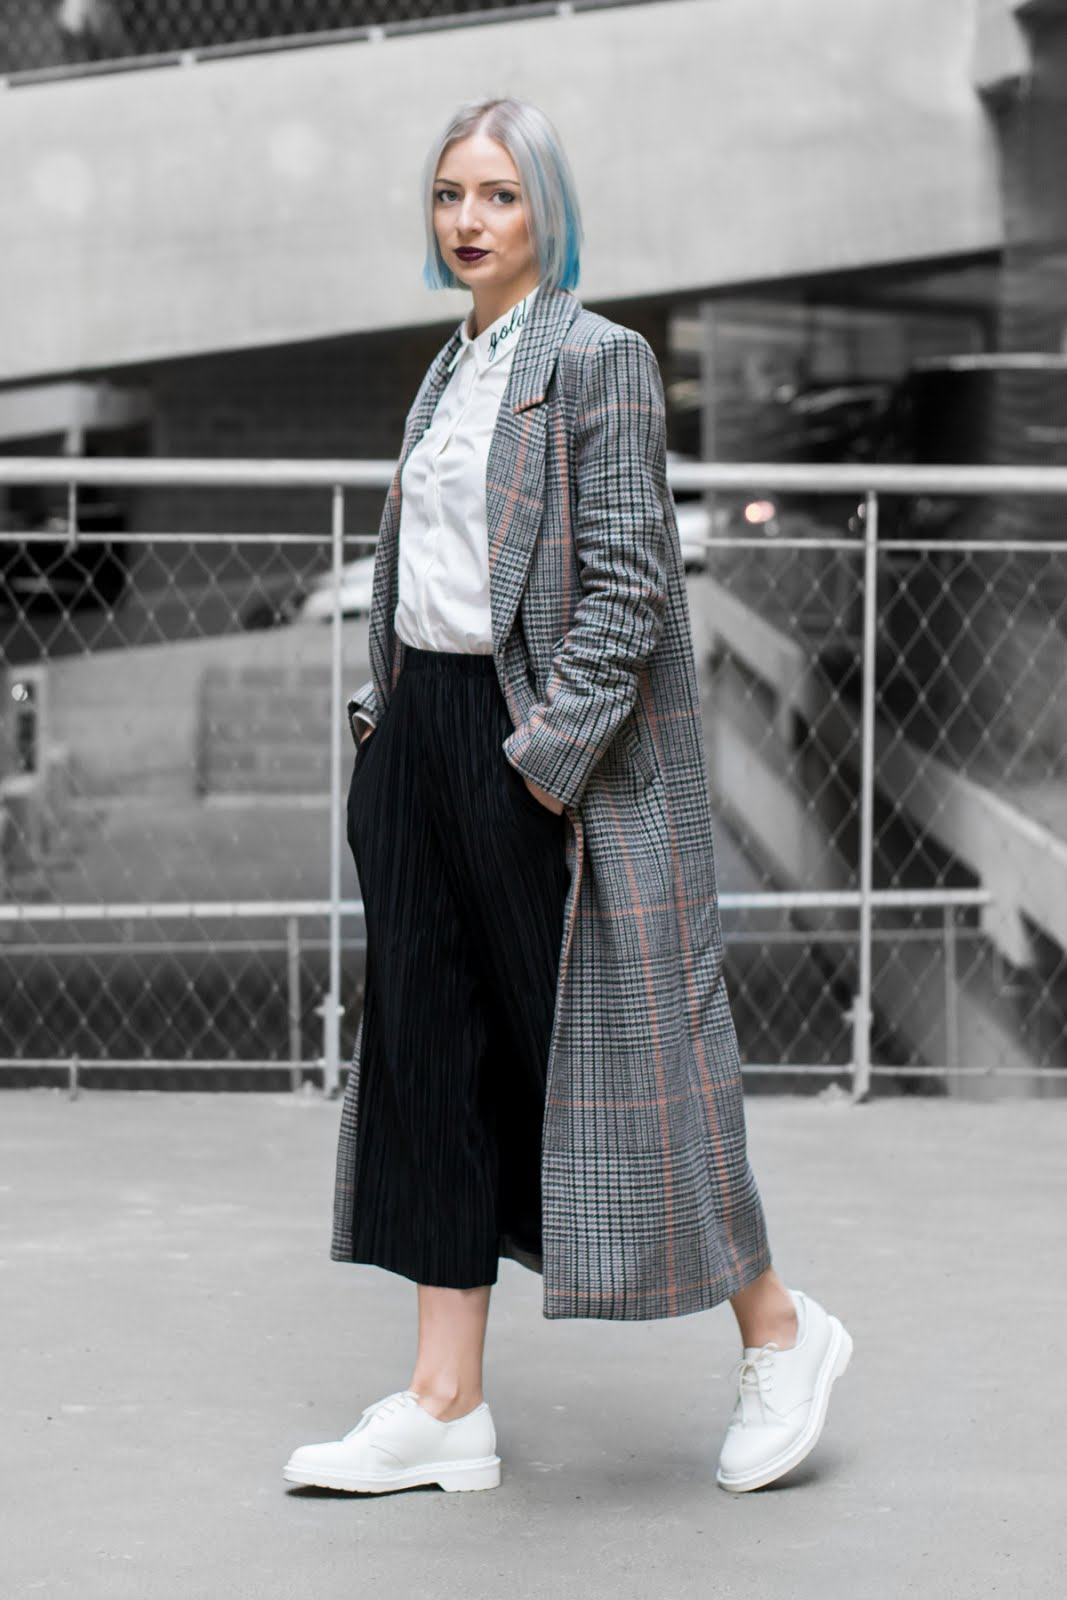 H&M trend check coat, Q/S designed by robin schulz, embroidered shirt, white shirt, minimalist, pleated trousers, white monochrome dr martens, grey hair, blue hair, outfit